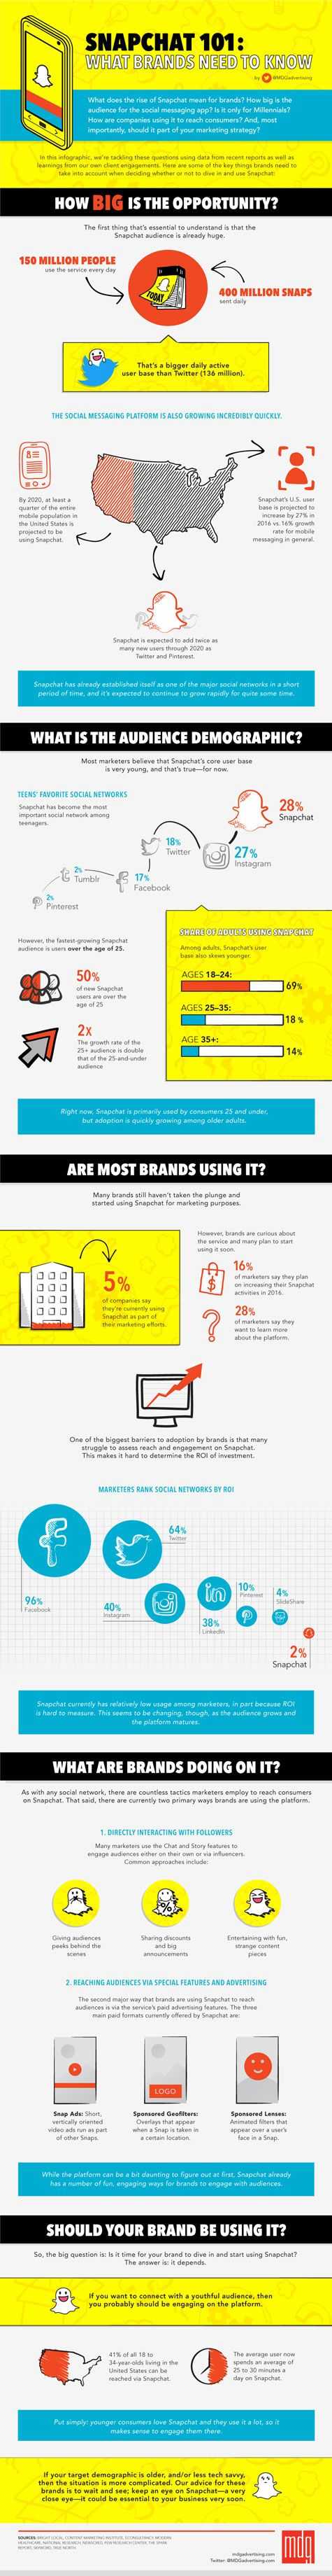 Snapchat 101: What Brands Need to Know [Infographic]  http://www.mdgadvertising.com/blog/snapchat-101-what-brands-need-to-know-infographic/